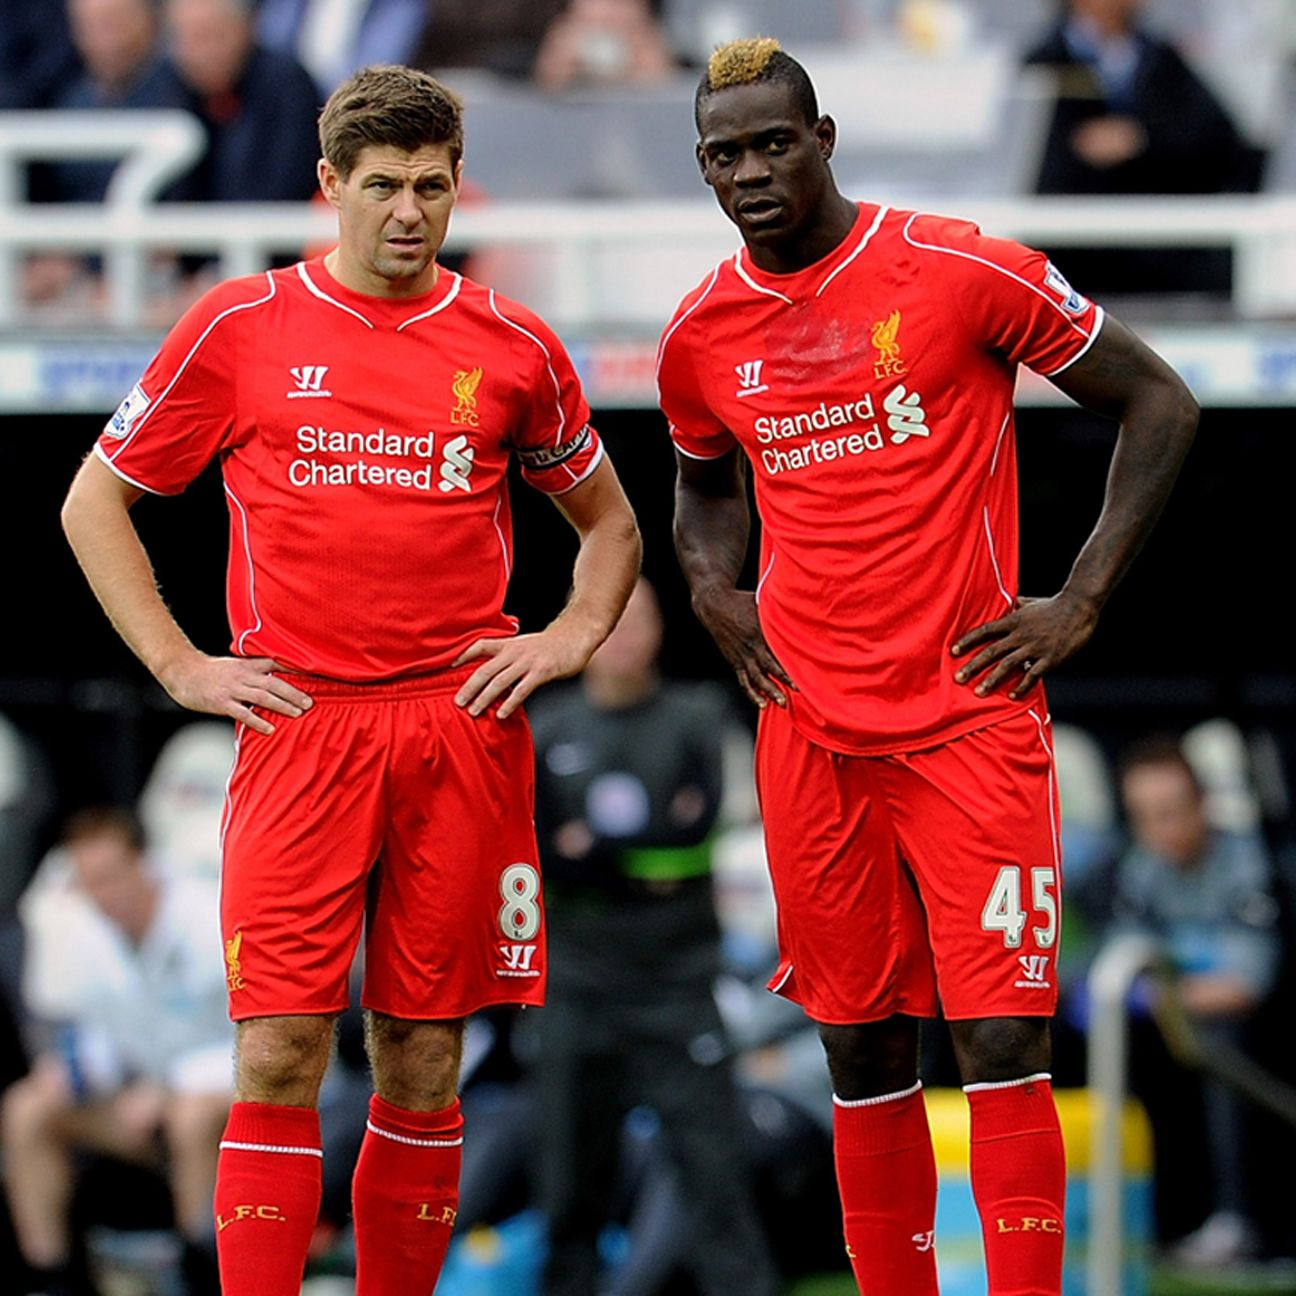 It's been a disappointing season for Steven Gerrard, Mario Balotelli and Liverpool.